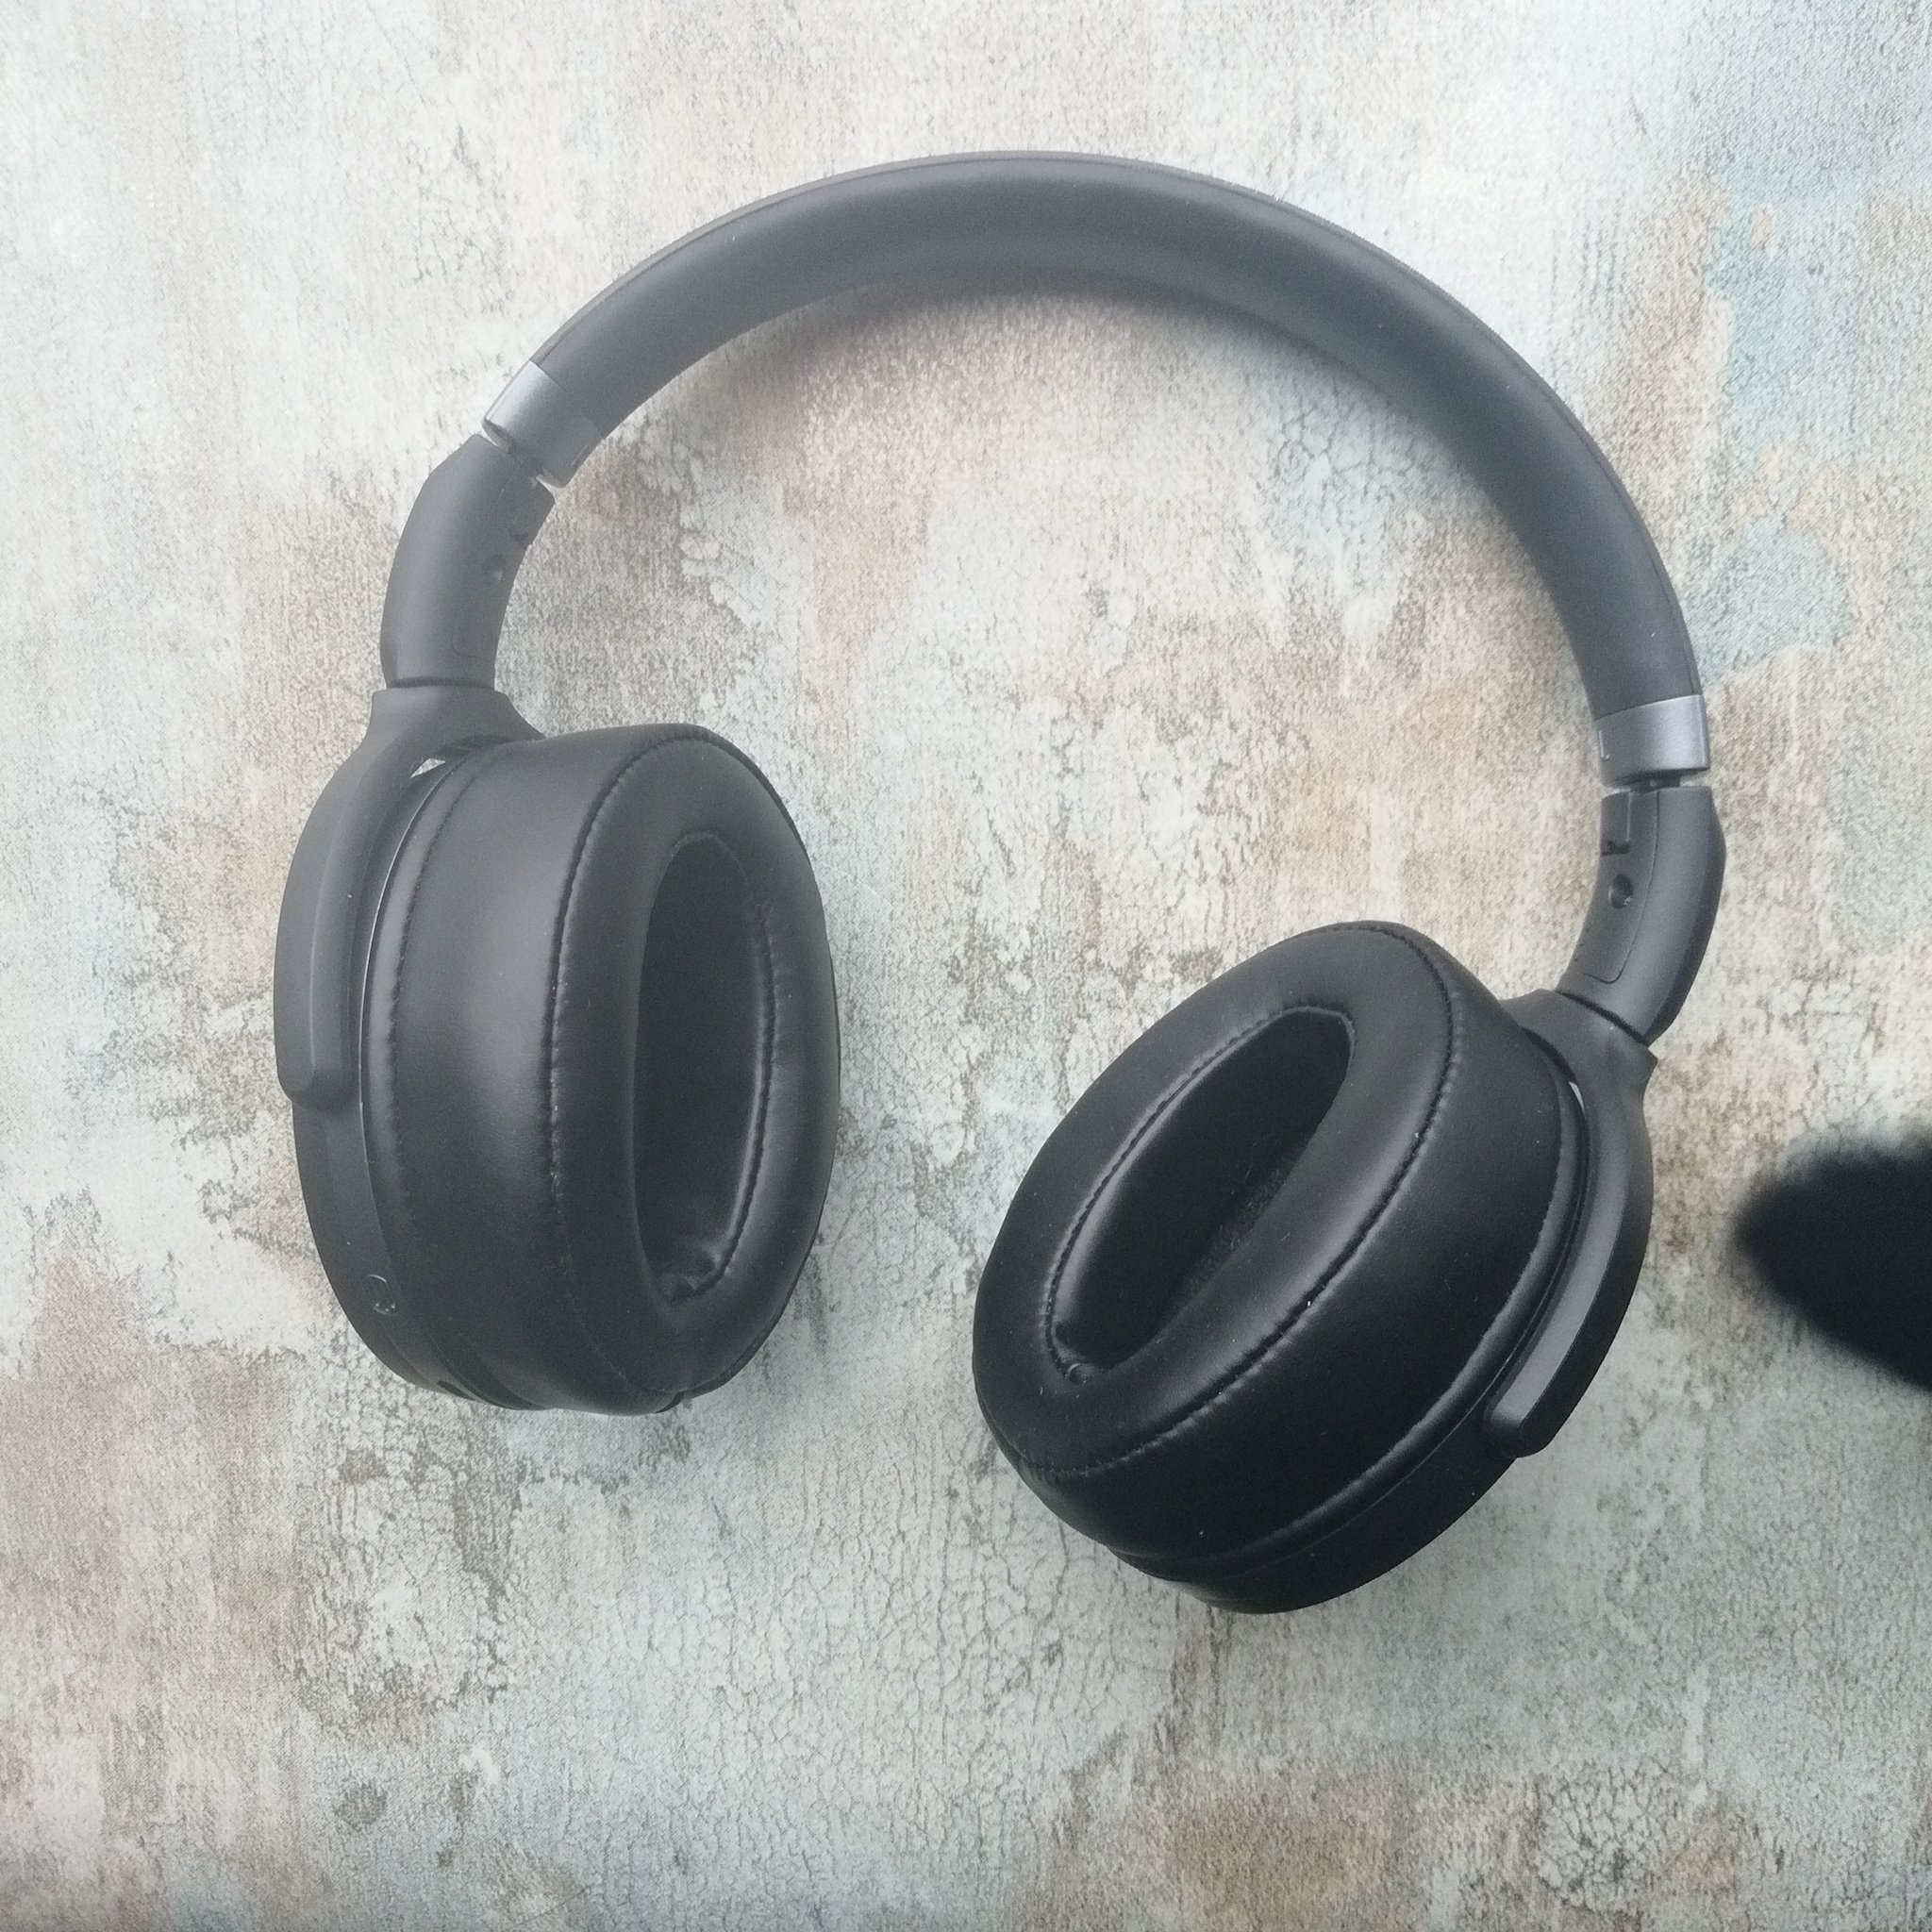 Review: Sennheiser headphones